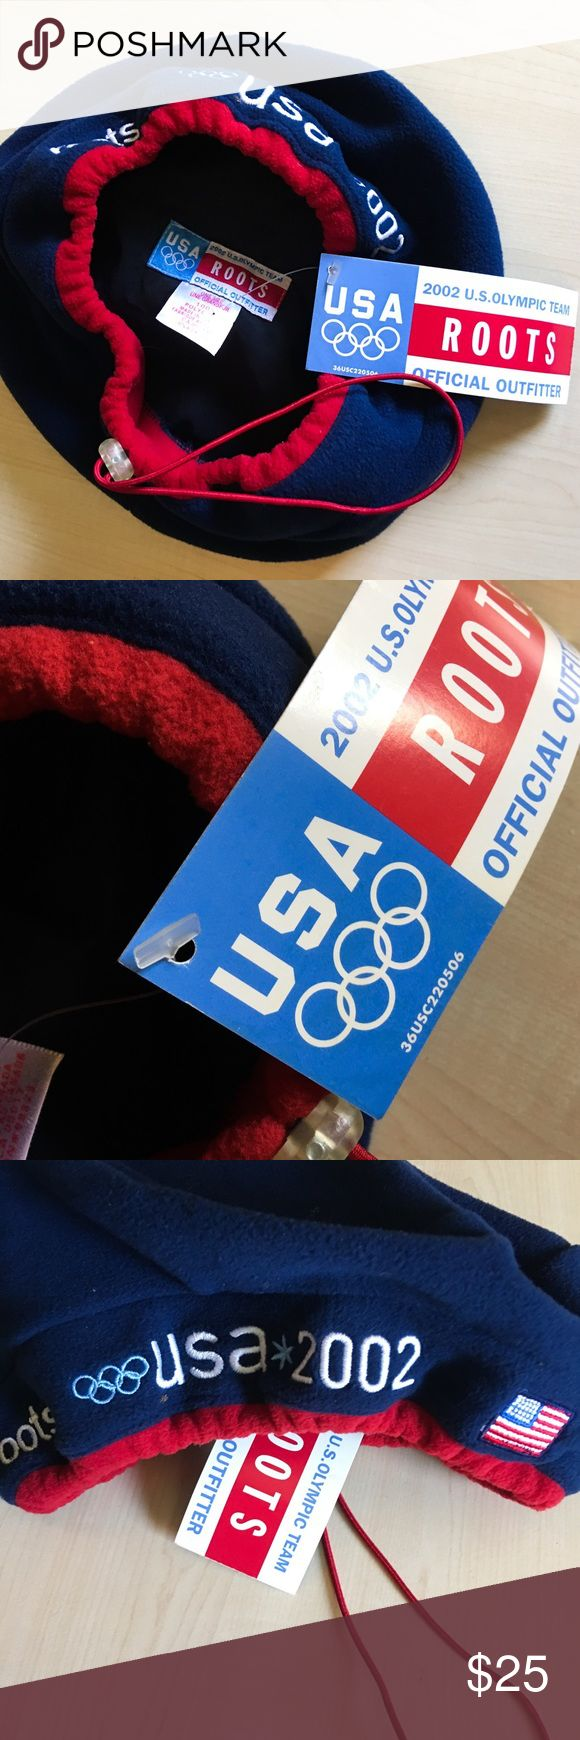 NWT 2002 USA Olympic Team Beret Hat USA 2002 Olympic Team Roots  Official Outfitter  In immaculate condition!  New with Tags / Made in Canada  Salt Lake 2002 Winter Olympic Games Material: 100% Polyester   -K- Vintage Accessories Hats